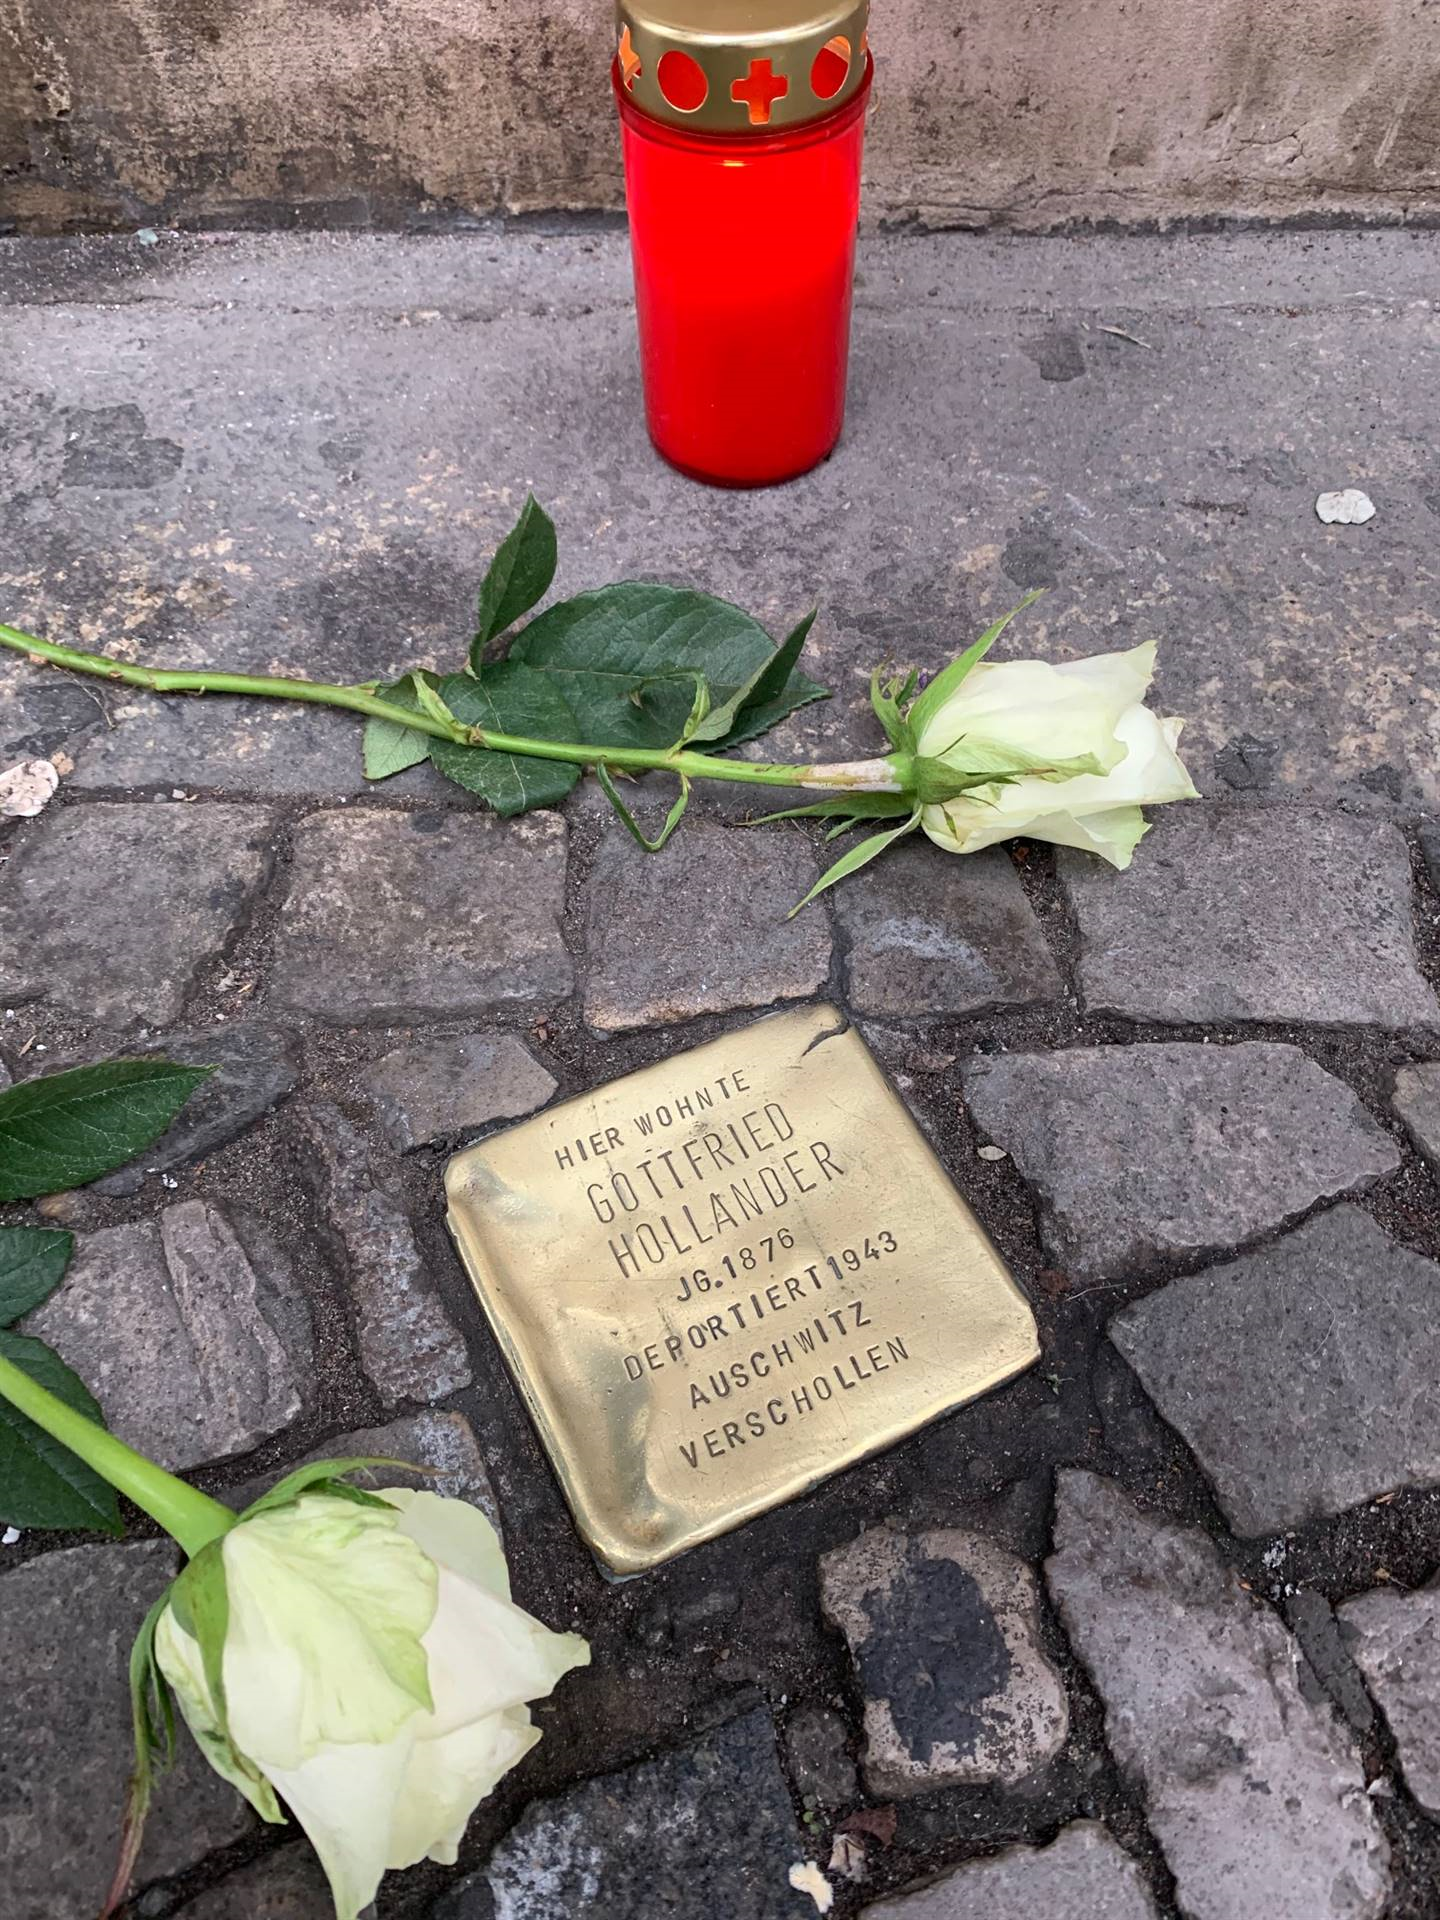 Memorials on the streets of Berlin